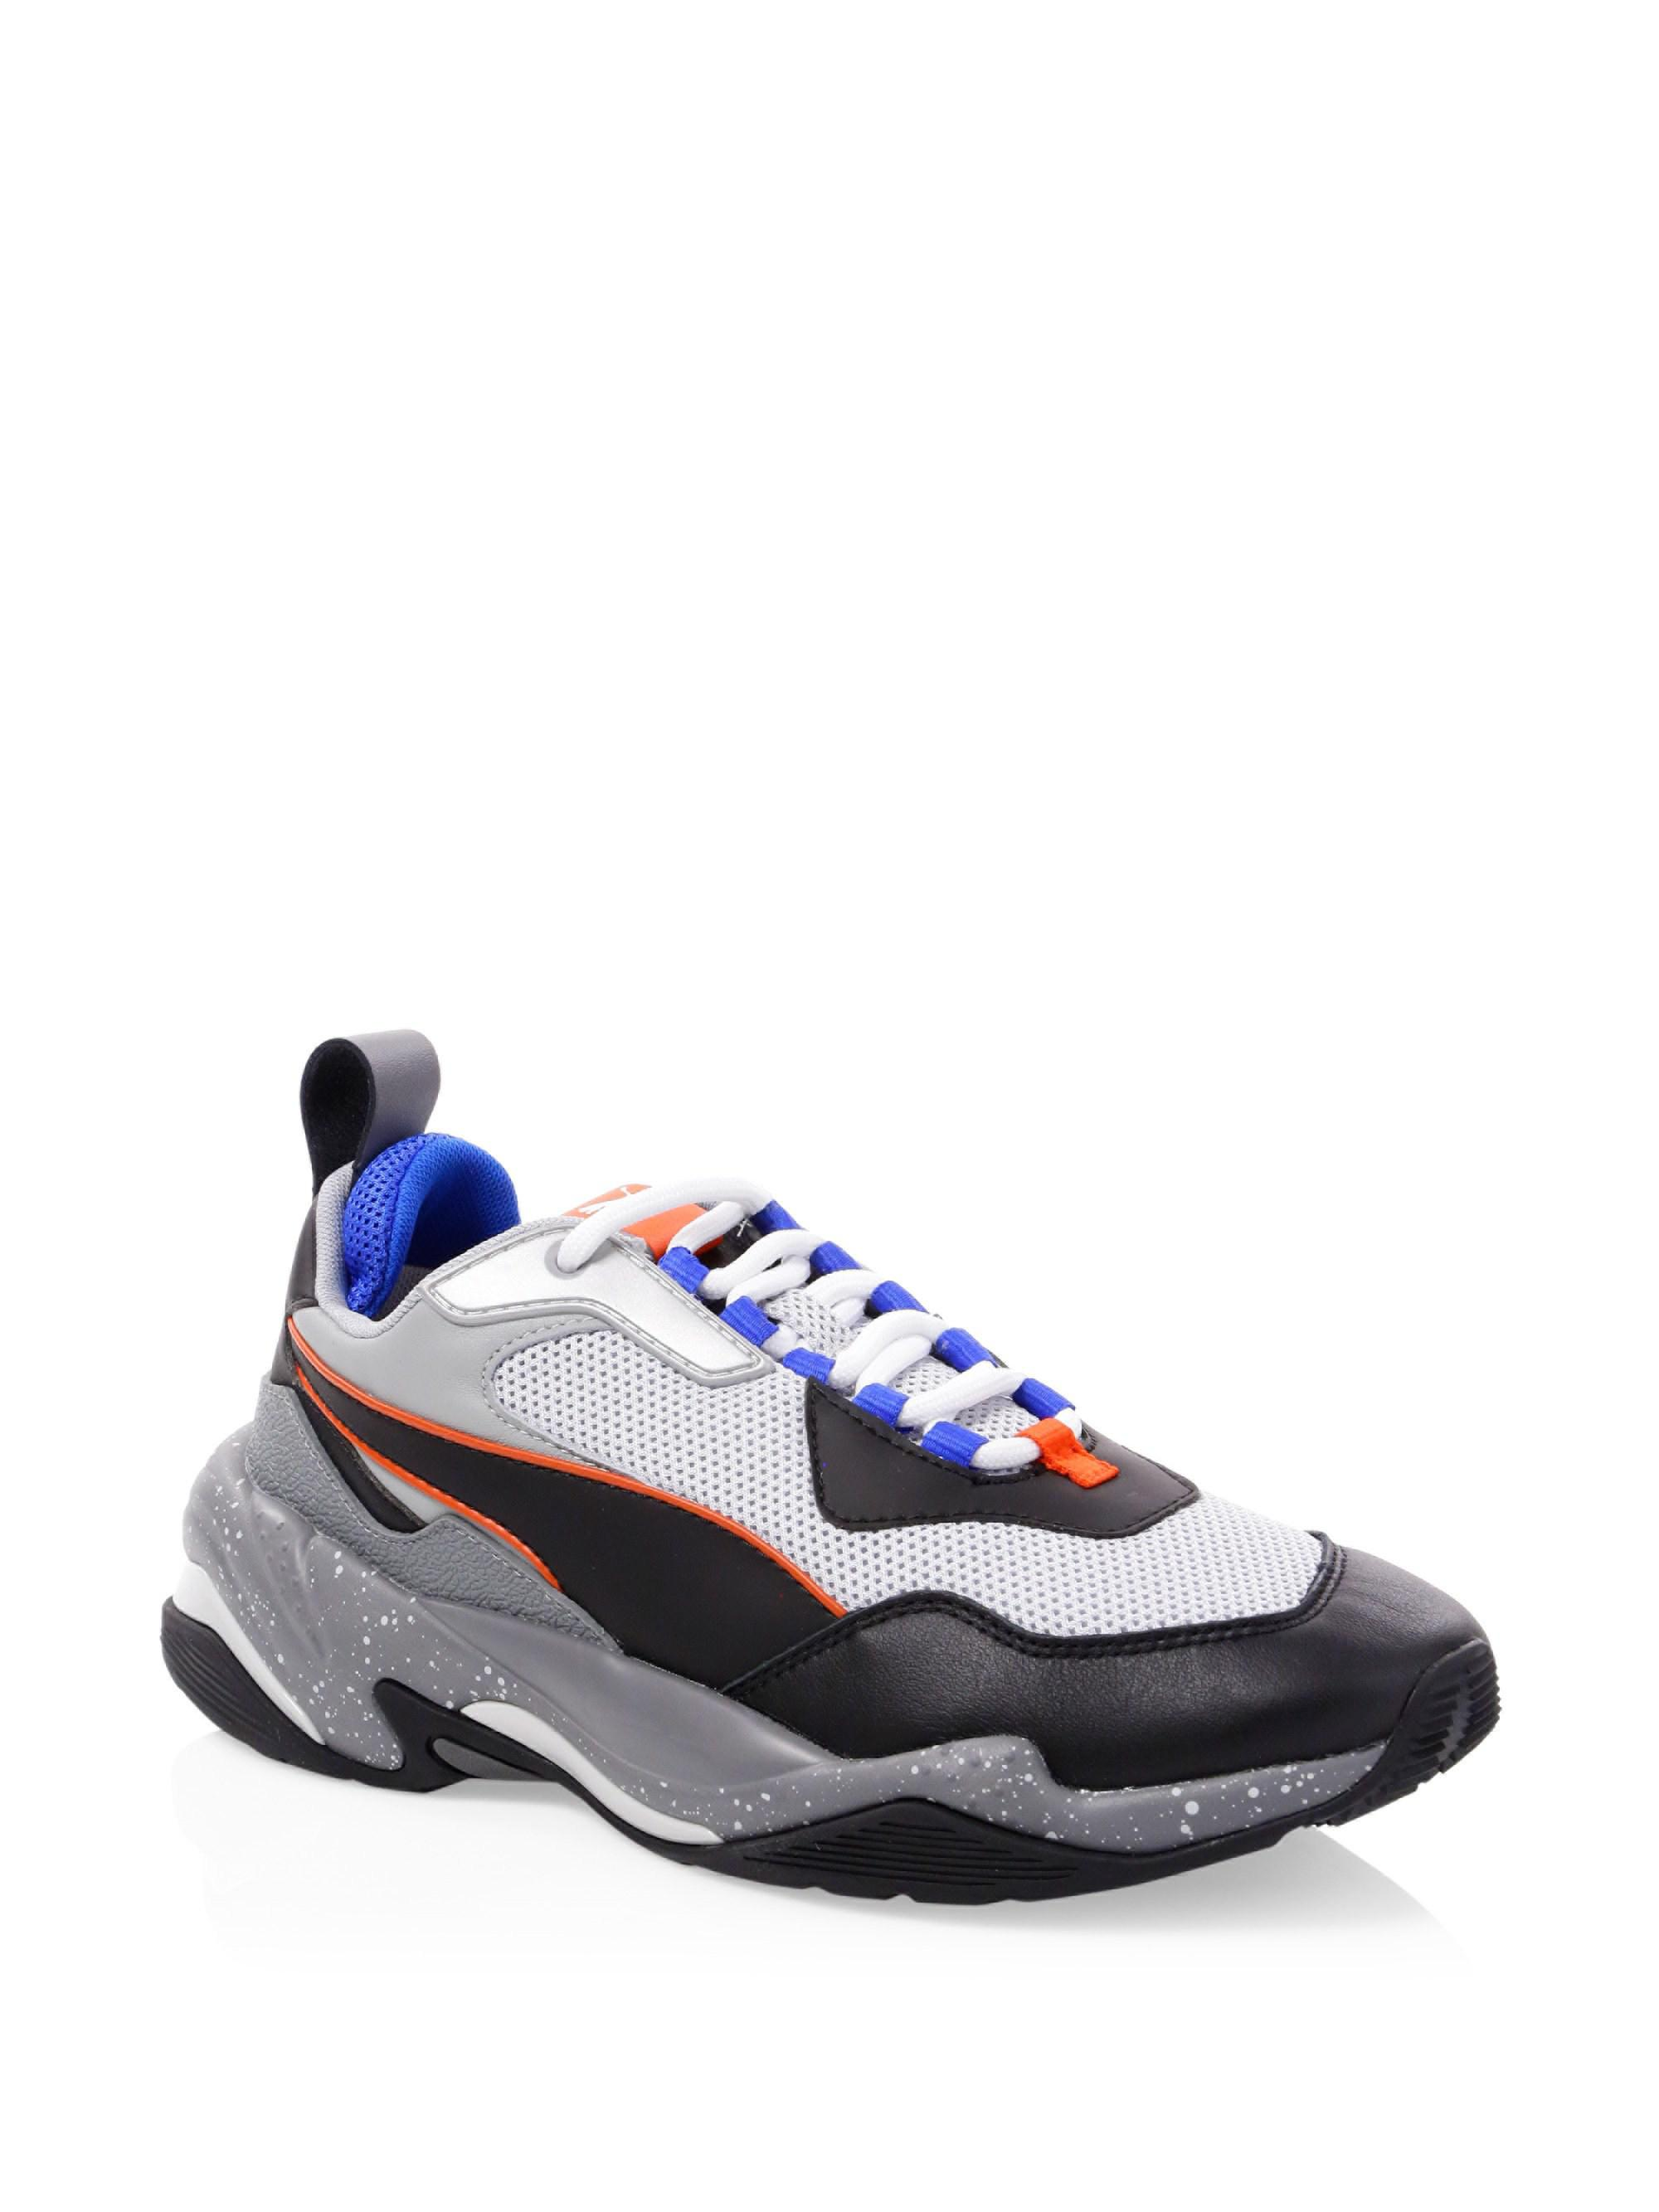 394104aa13e Puma Thunder Electric Sneakers in Gray for Men - Save ...